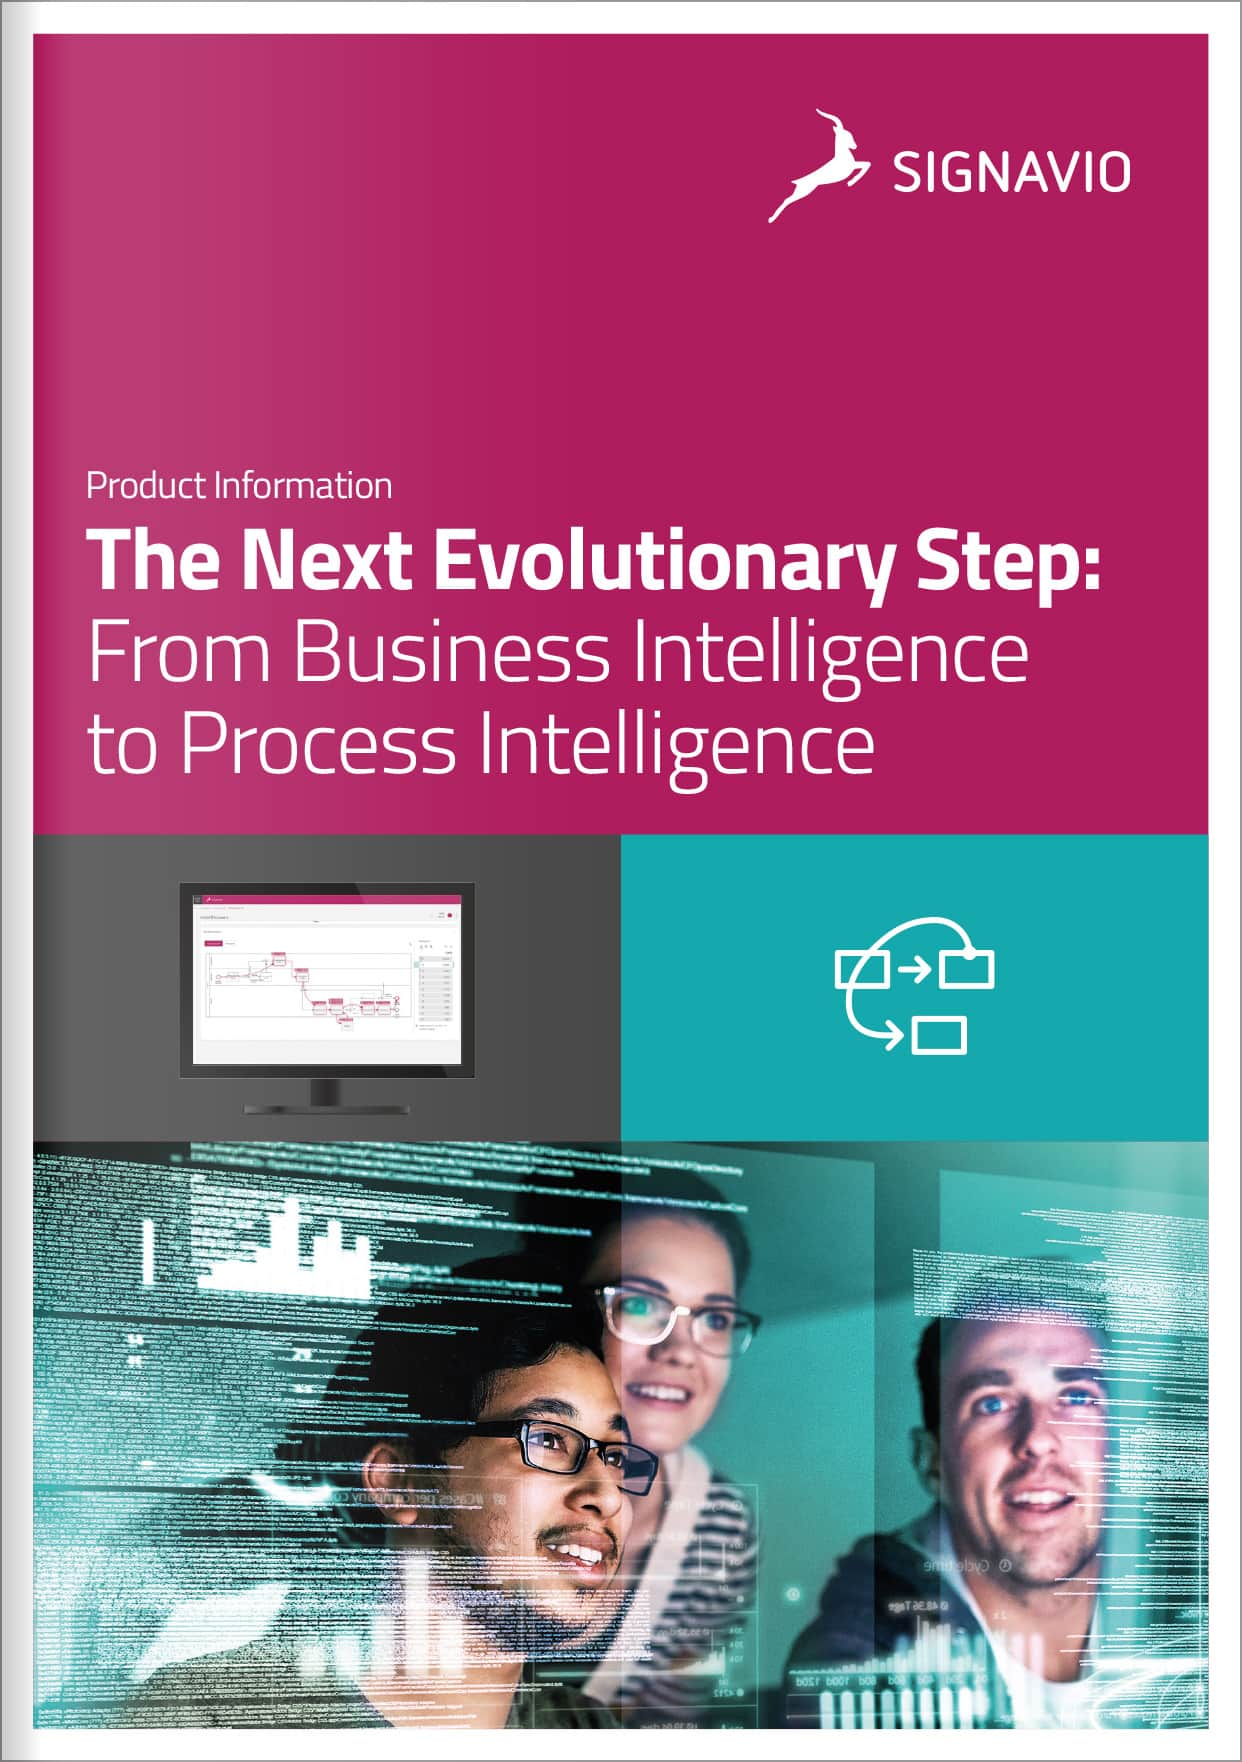 business intelligence to process intelligence cover page image